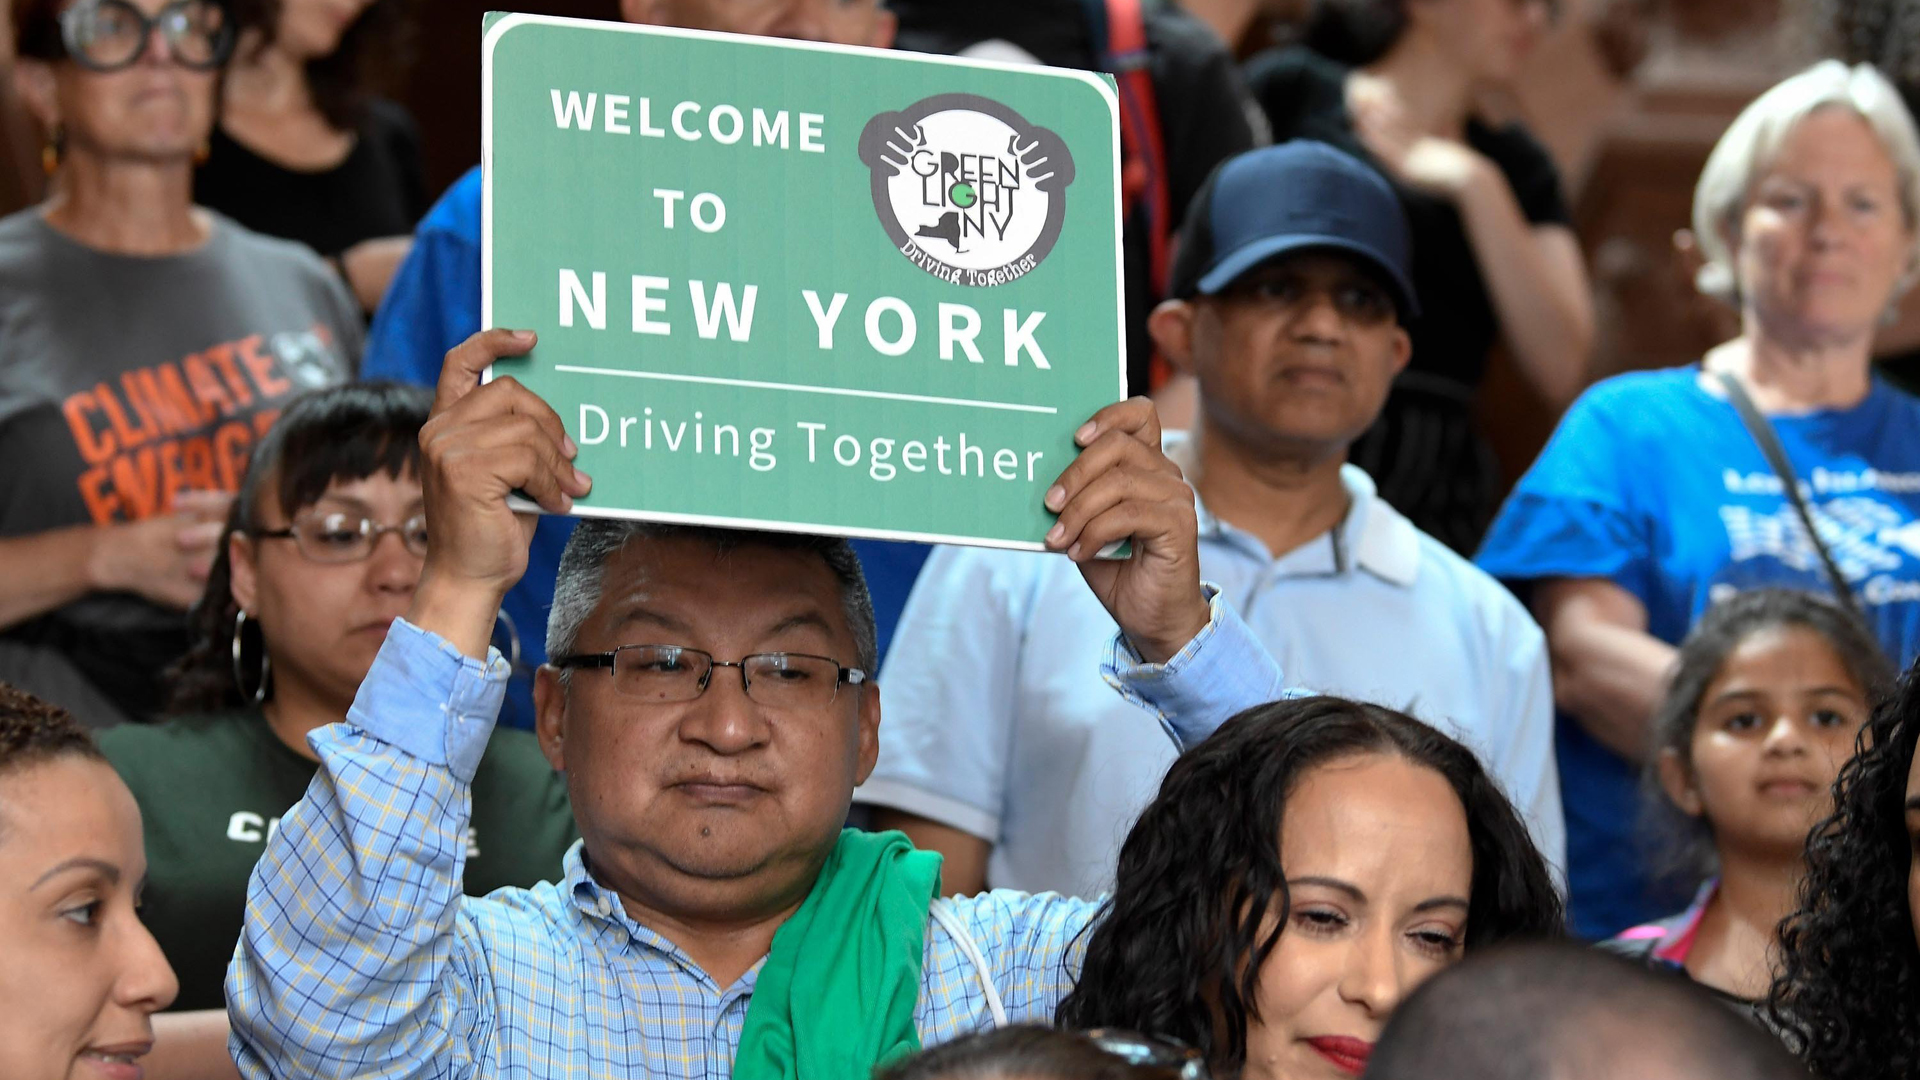 An onlooker holds up a sign as members of the New York State Assembly speak in favor of passing the Green Light Bill. (Credit: Hans Pennink/AP)